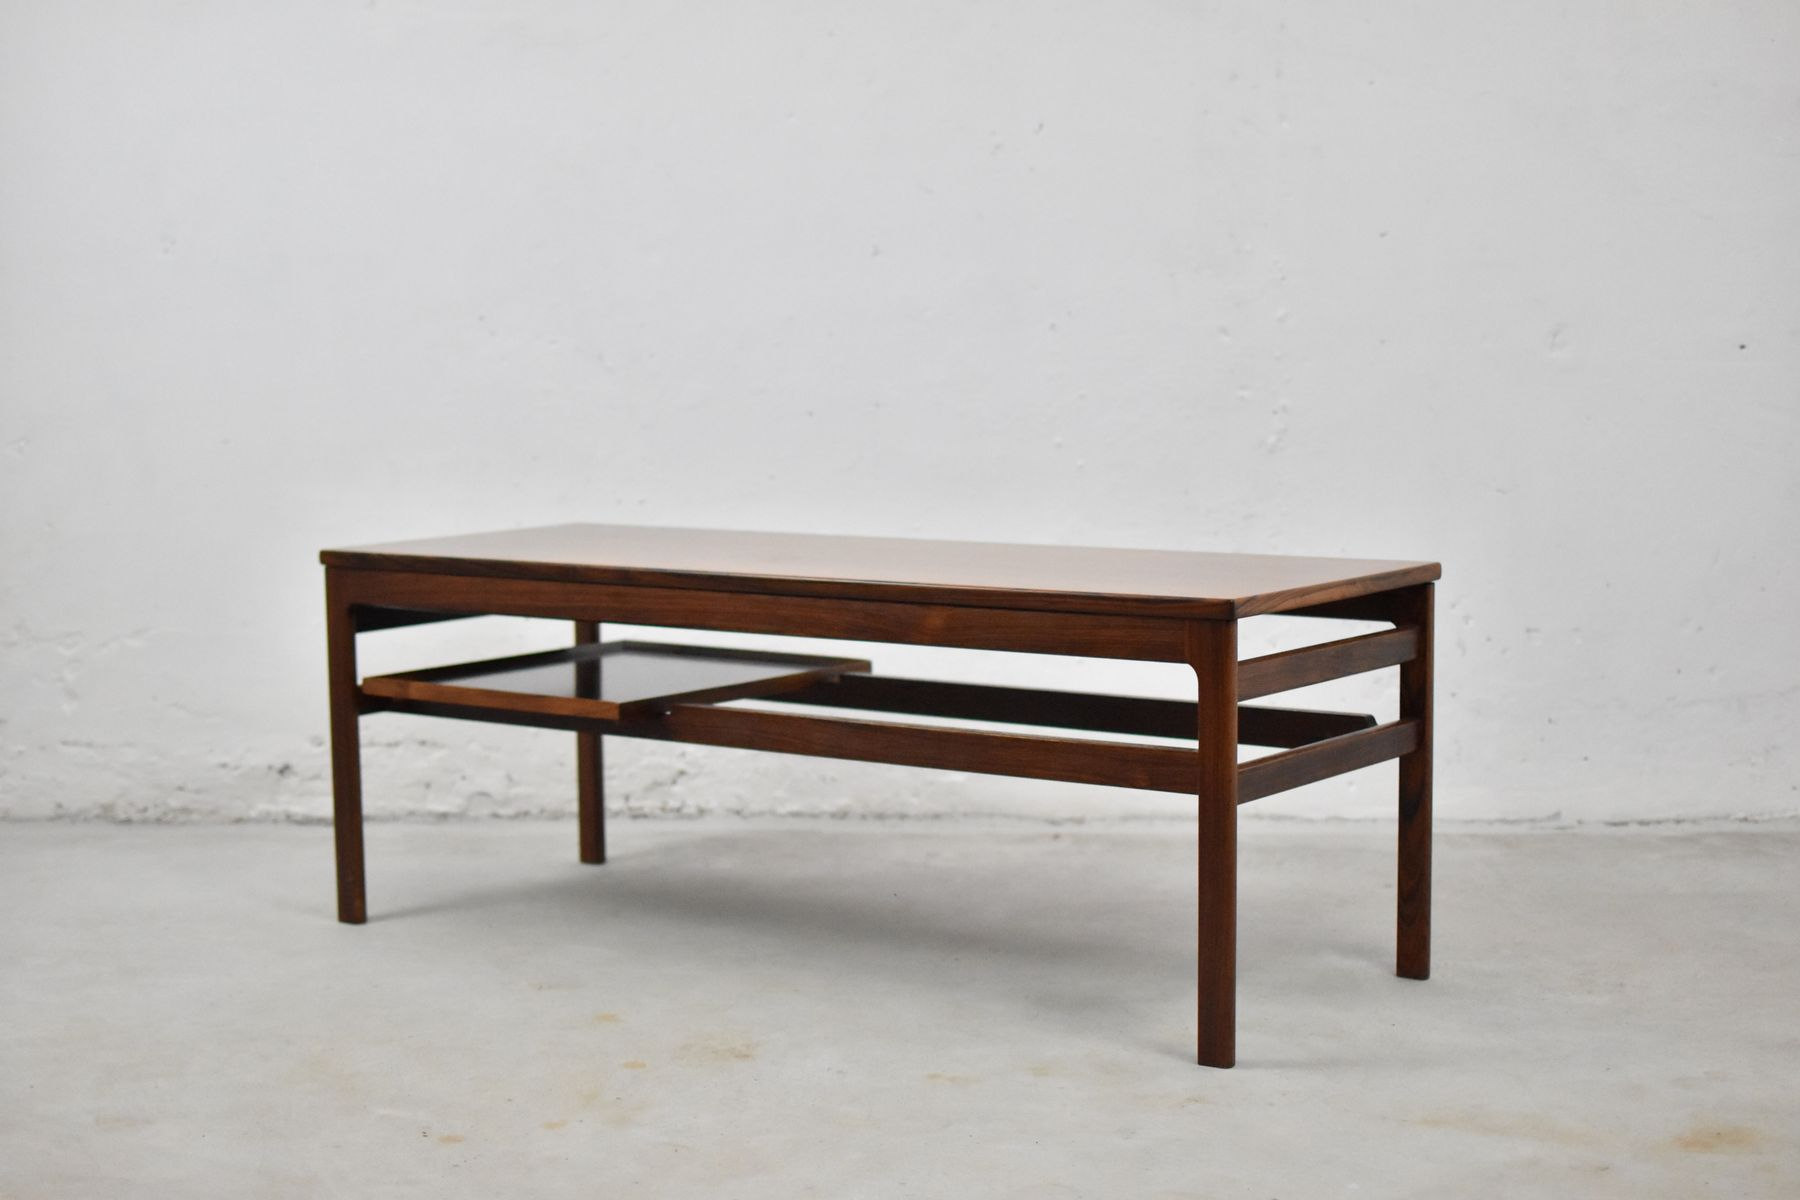 Rosewood Coffee Table With Serving Tray By Hans Olsen For Buck Kjaer 1958